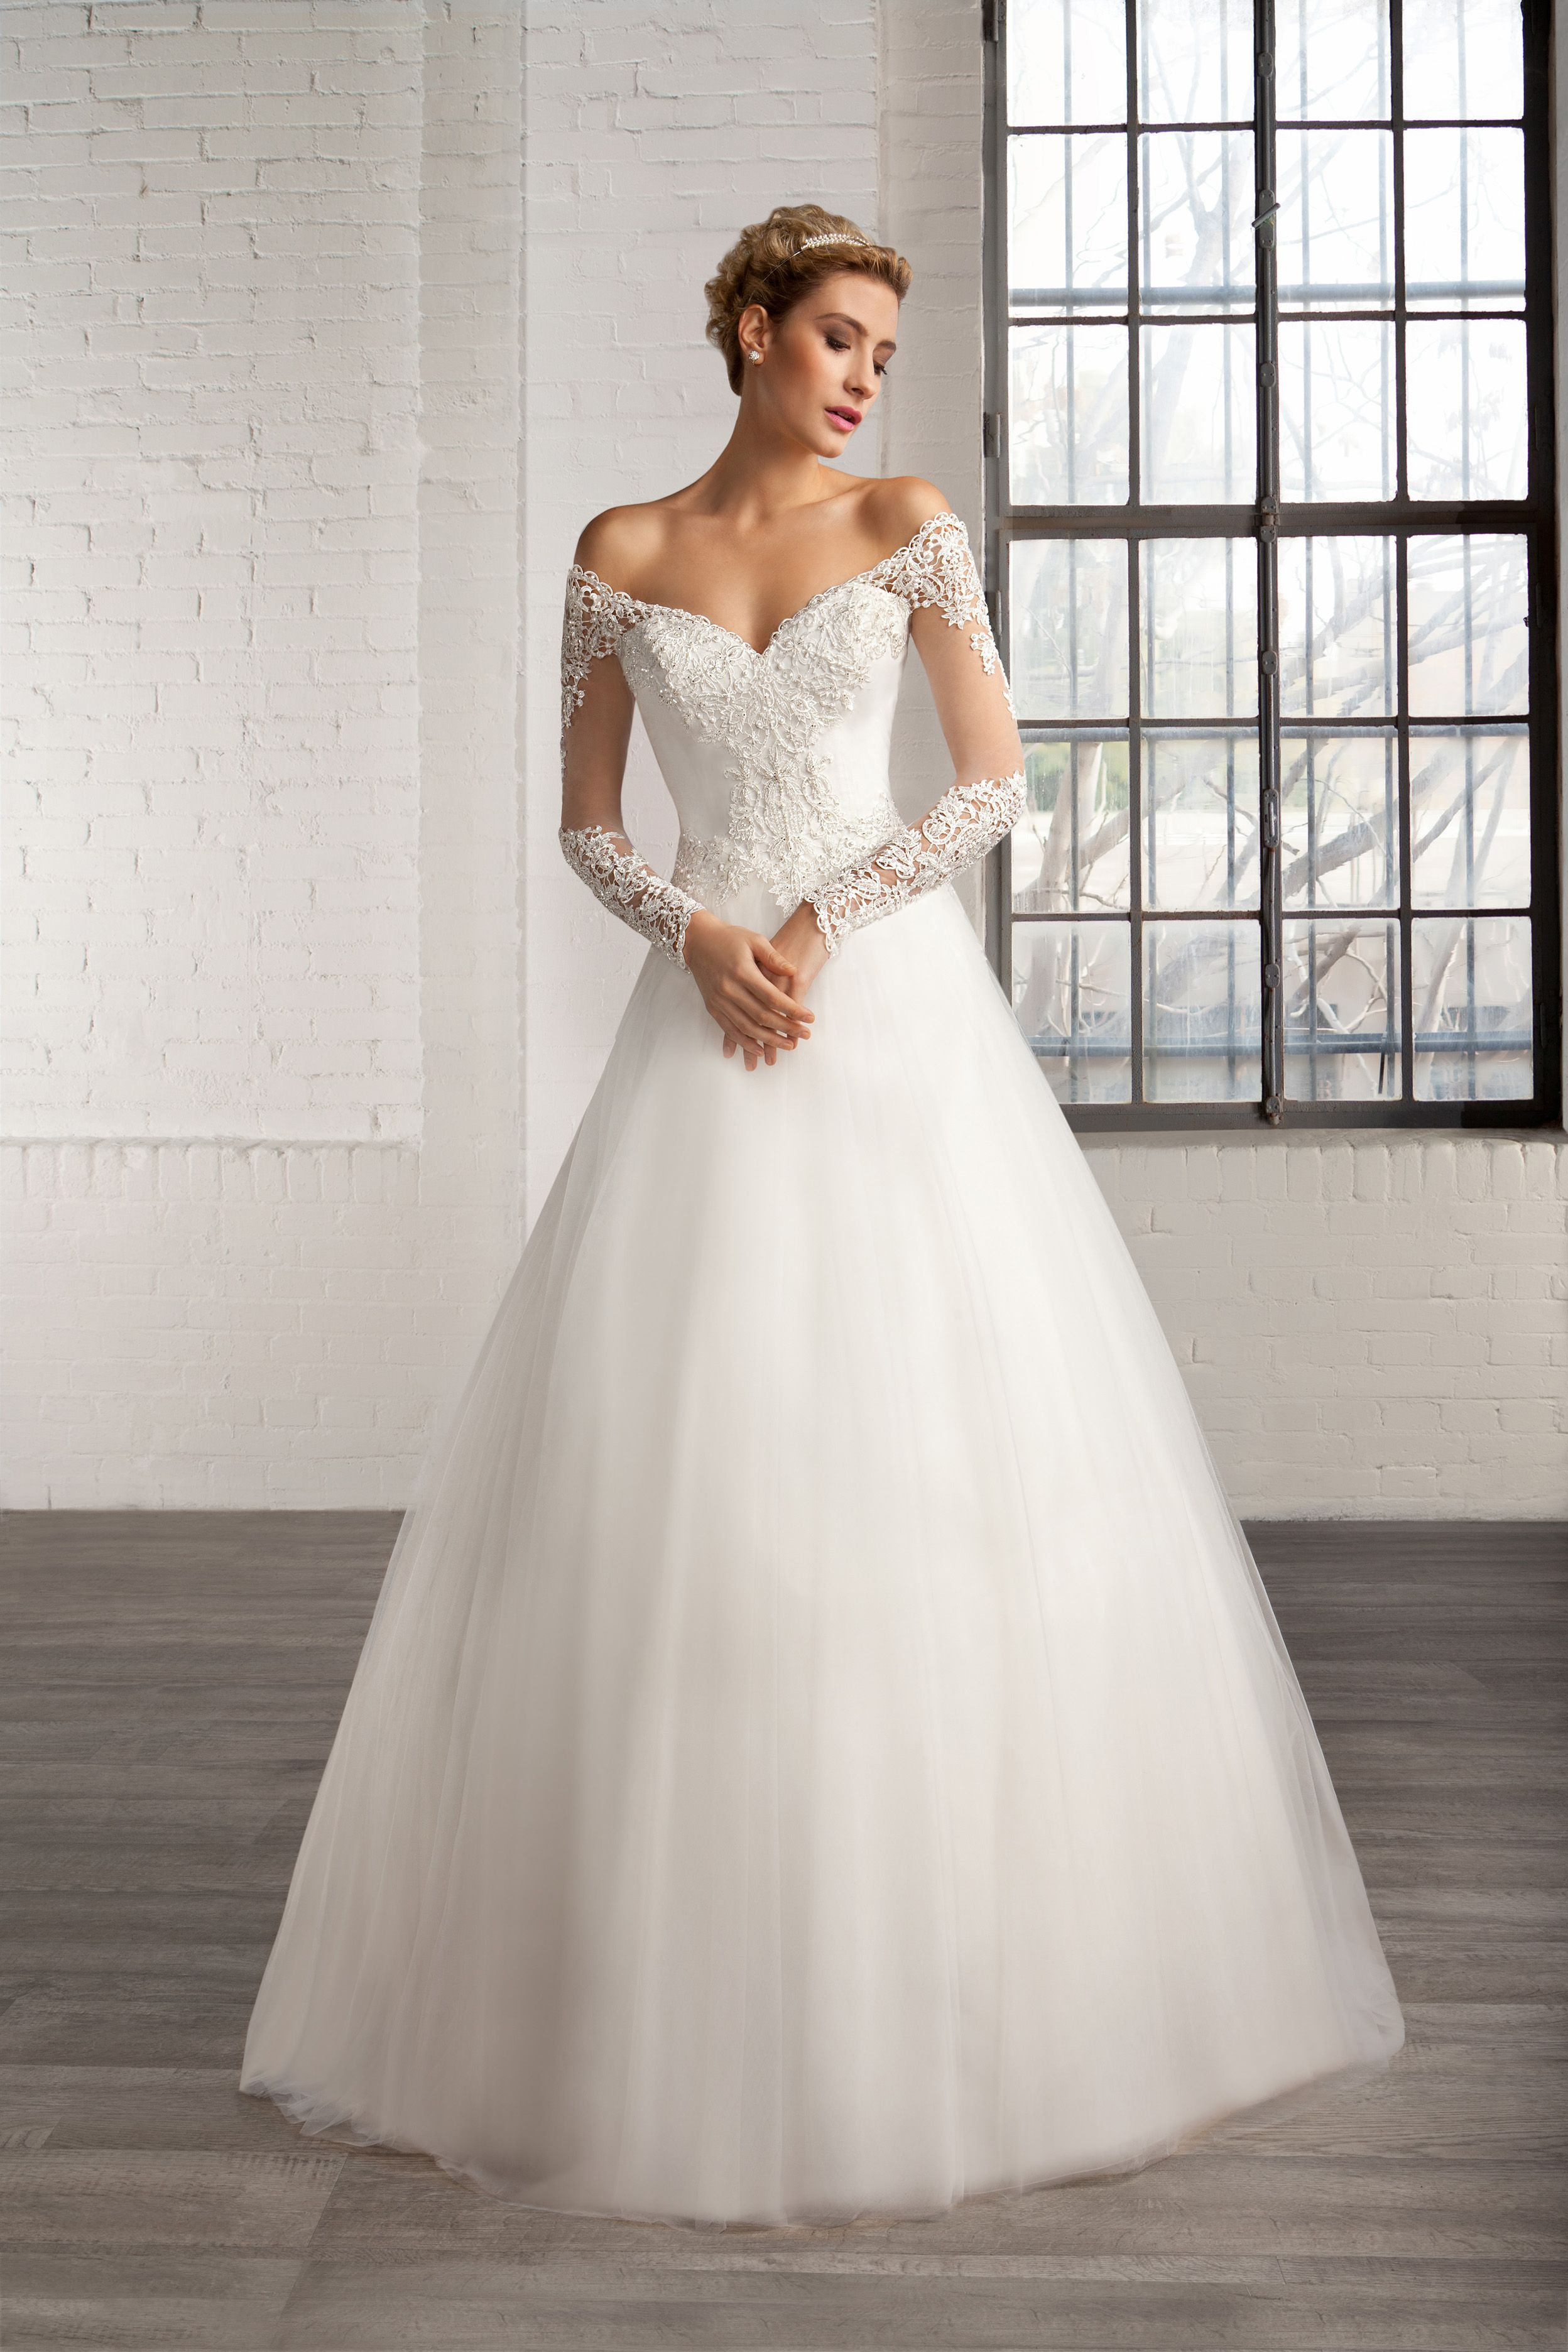 Lace ball gown wedding dresses  Pin by Florence on Mariage  Pinterest